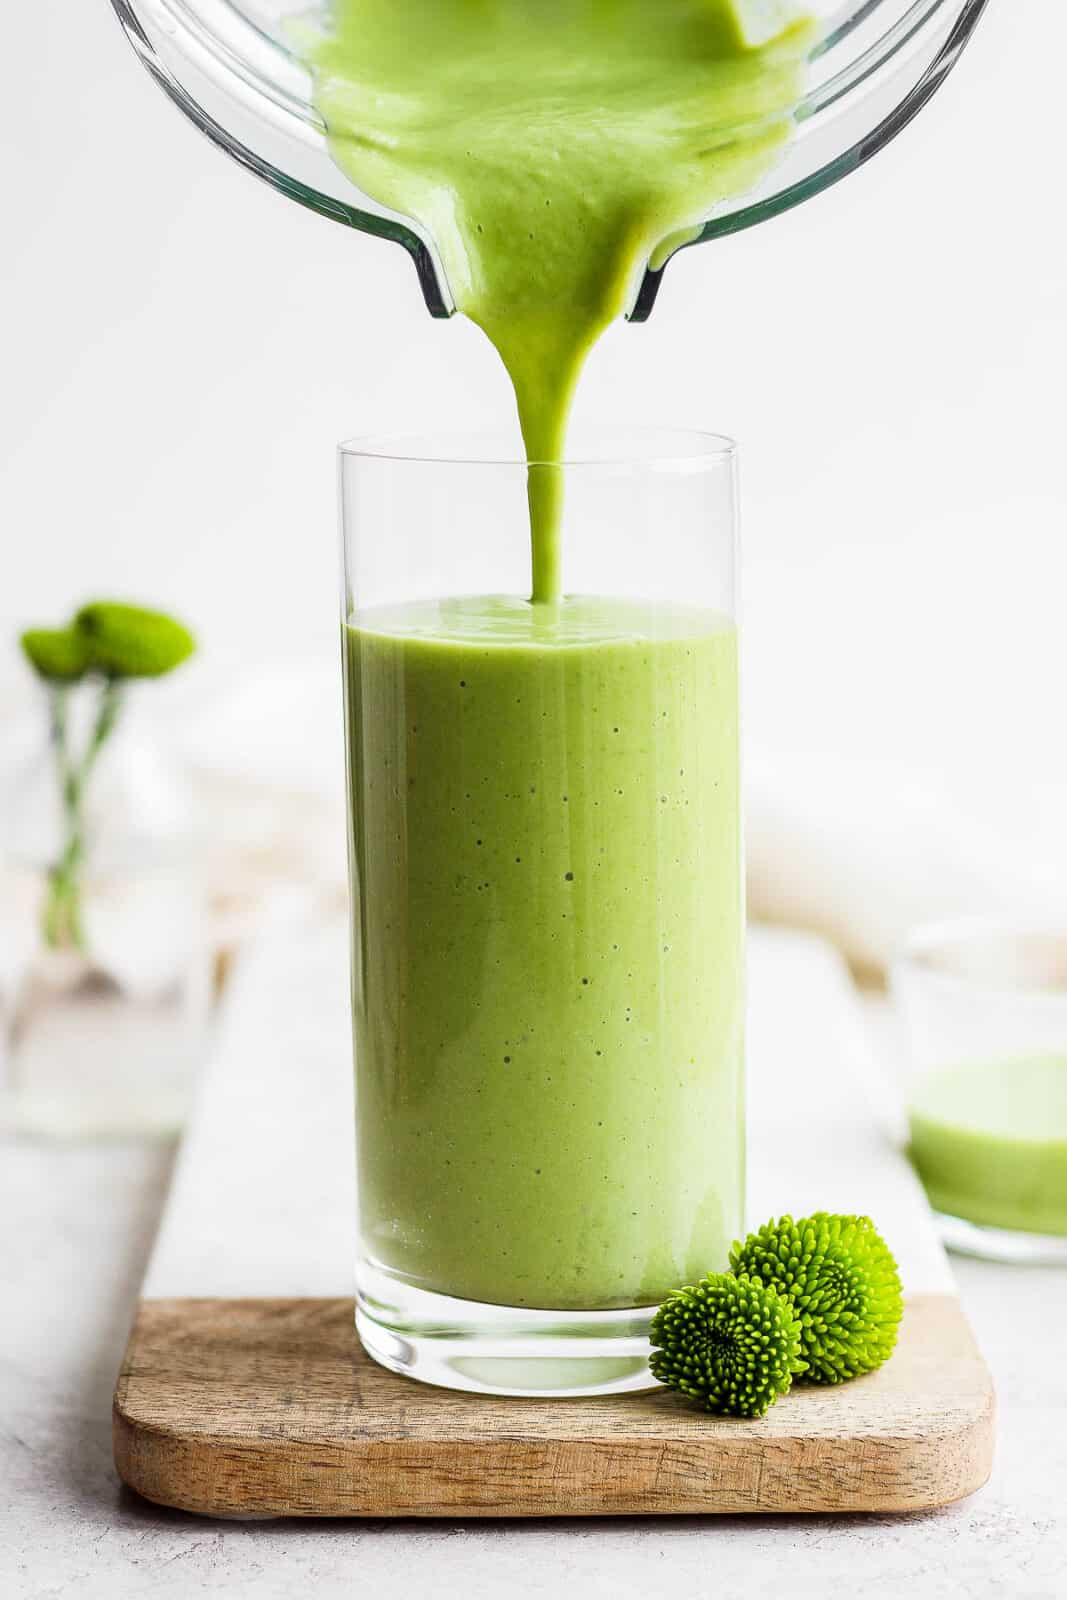 Pouring a green smoothie from a blender into a glass.